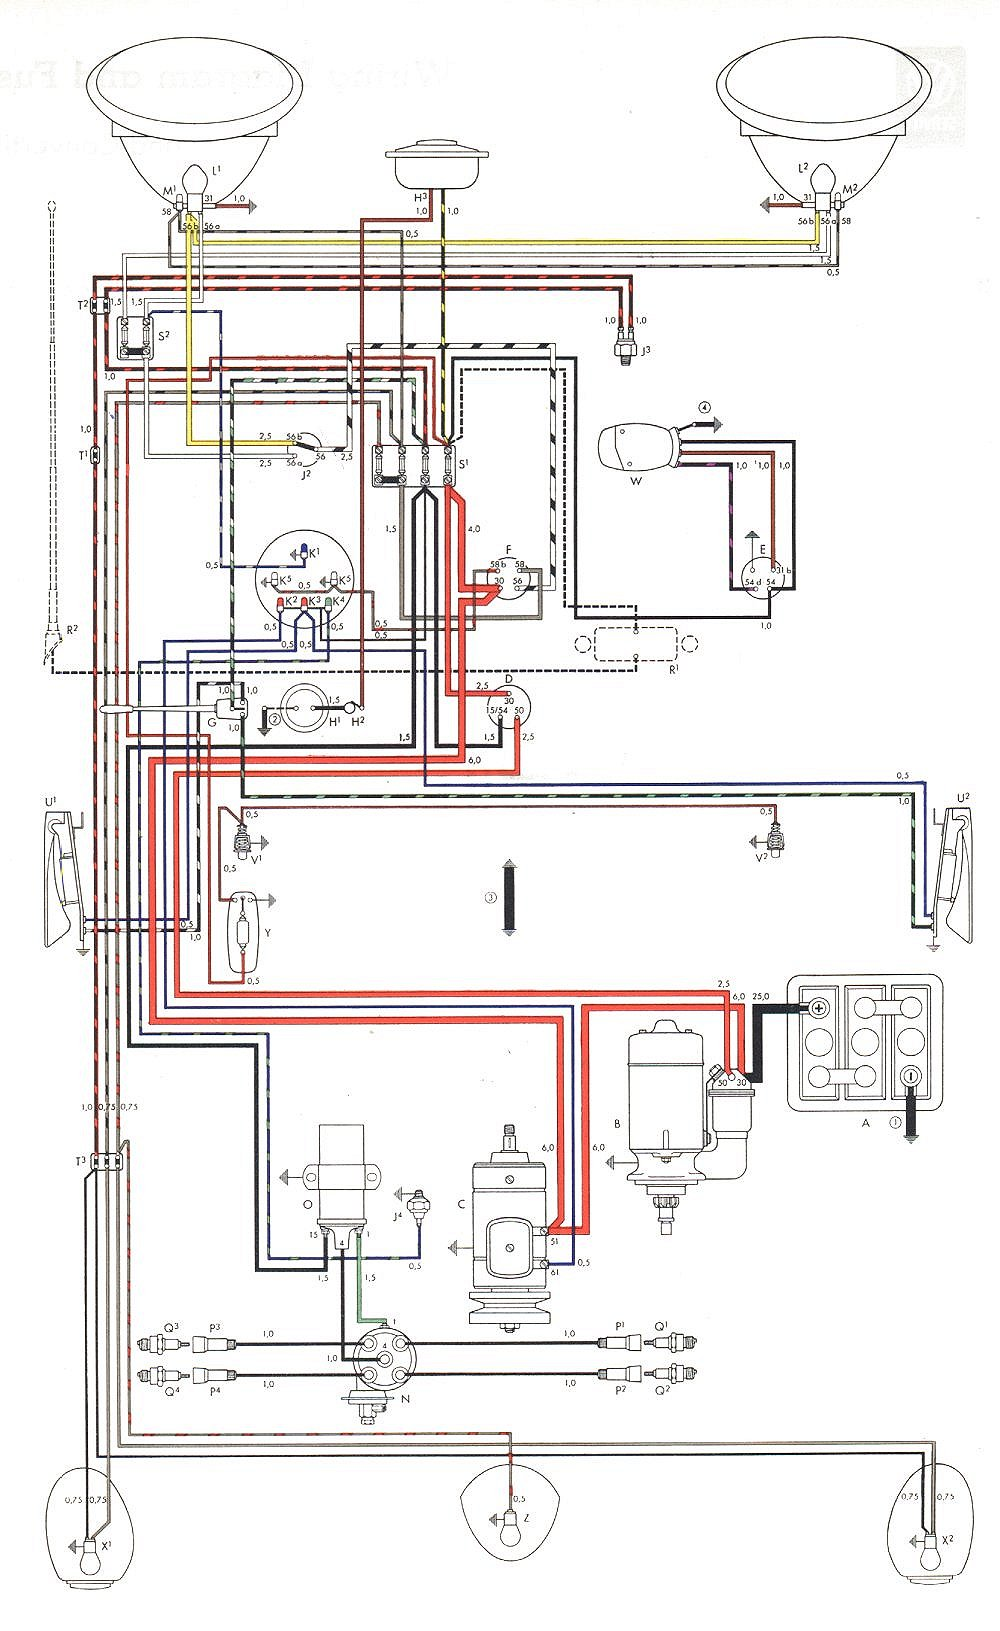 medium resolution of vw wiring harness diagram wiring diagram load 2001 vw beetle alternator wiring diagram 2001 vw beetle wiring